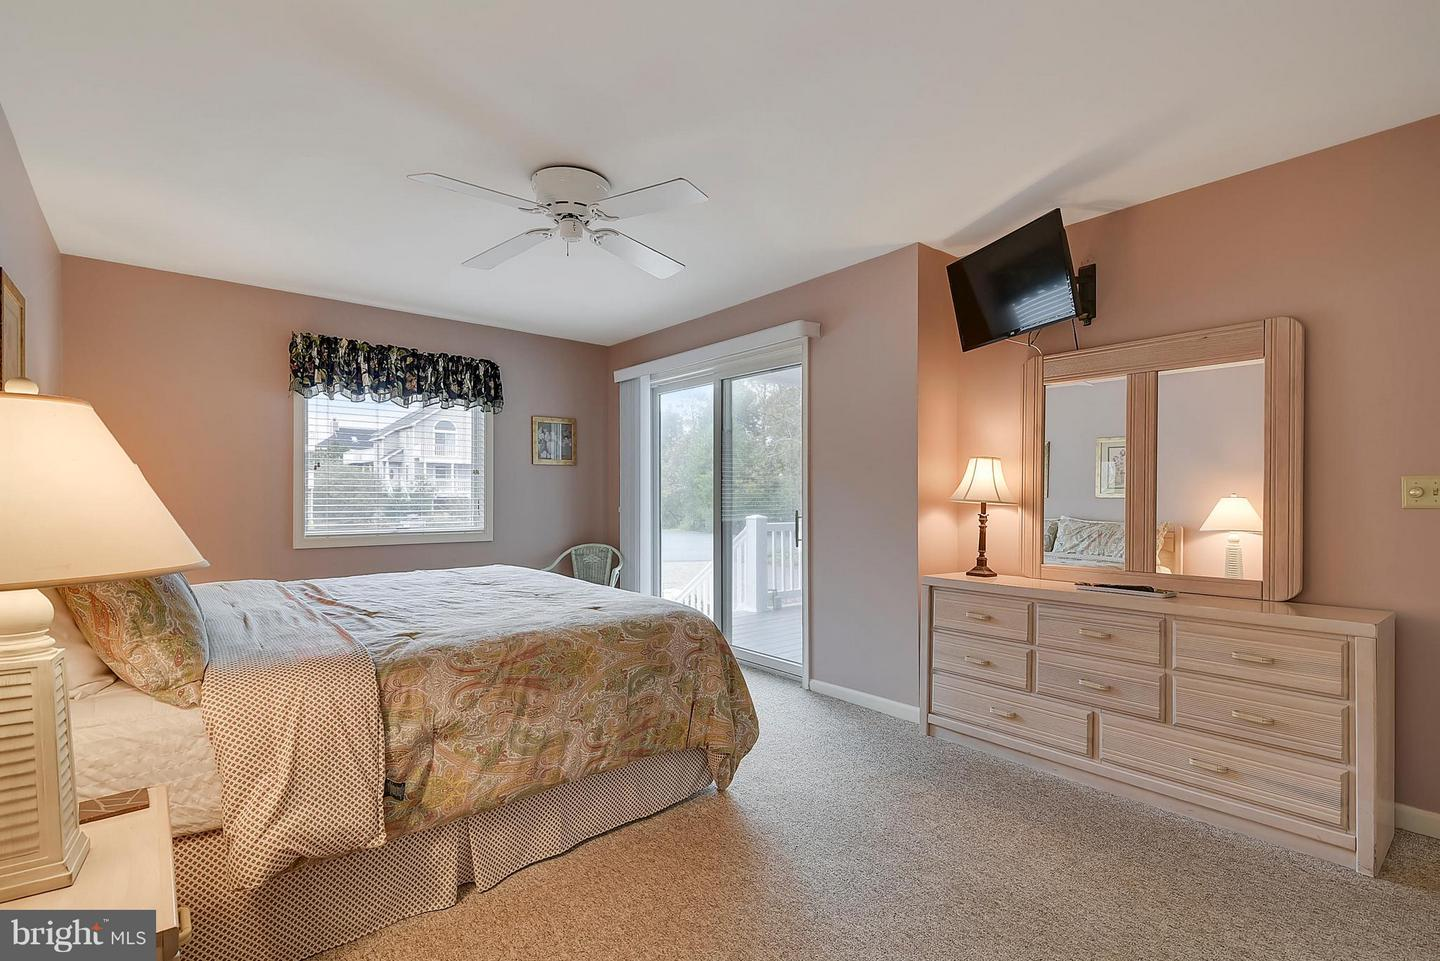 1002344128-300986984177-2018-11-07-14-16-58 39634 Seatrout Cir | North Bethany, DE Real Estate For Sale | MLS# 1002344128  - 1st Choice Properties